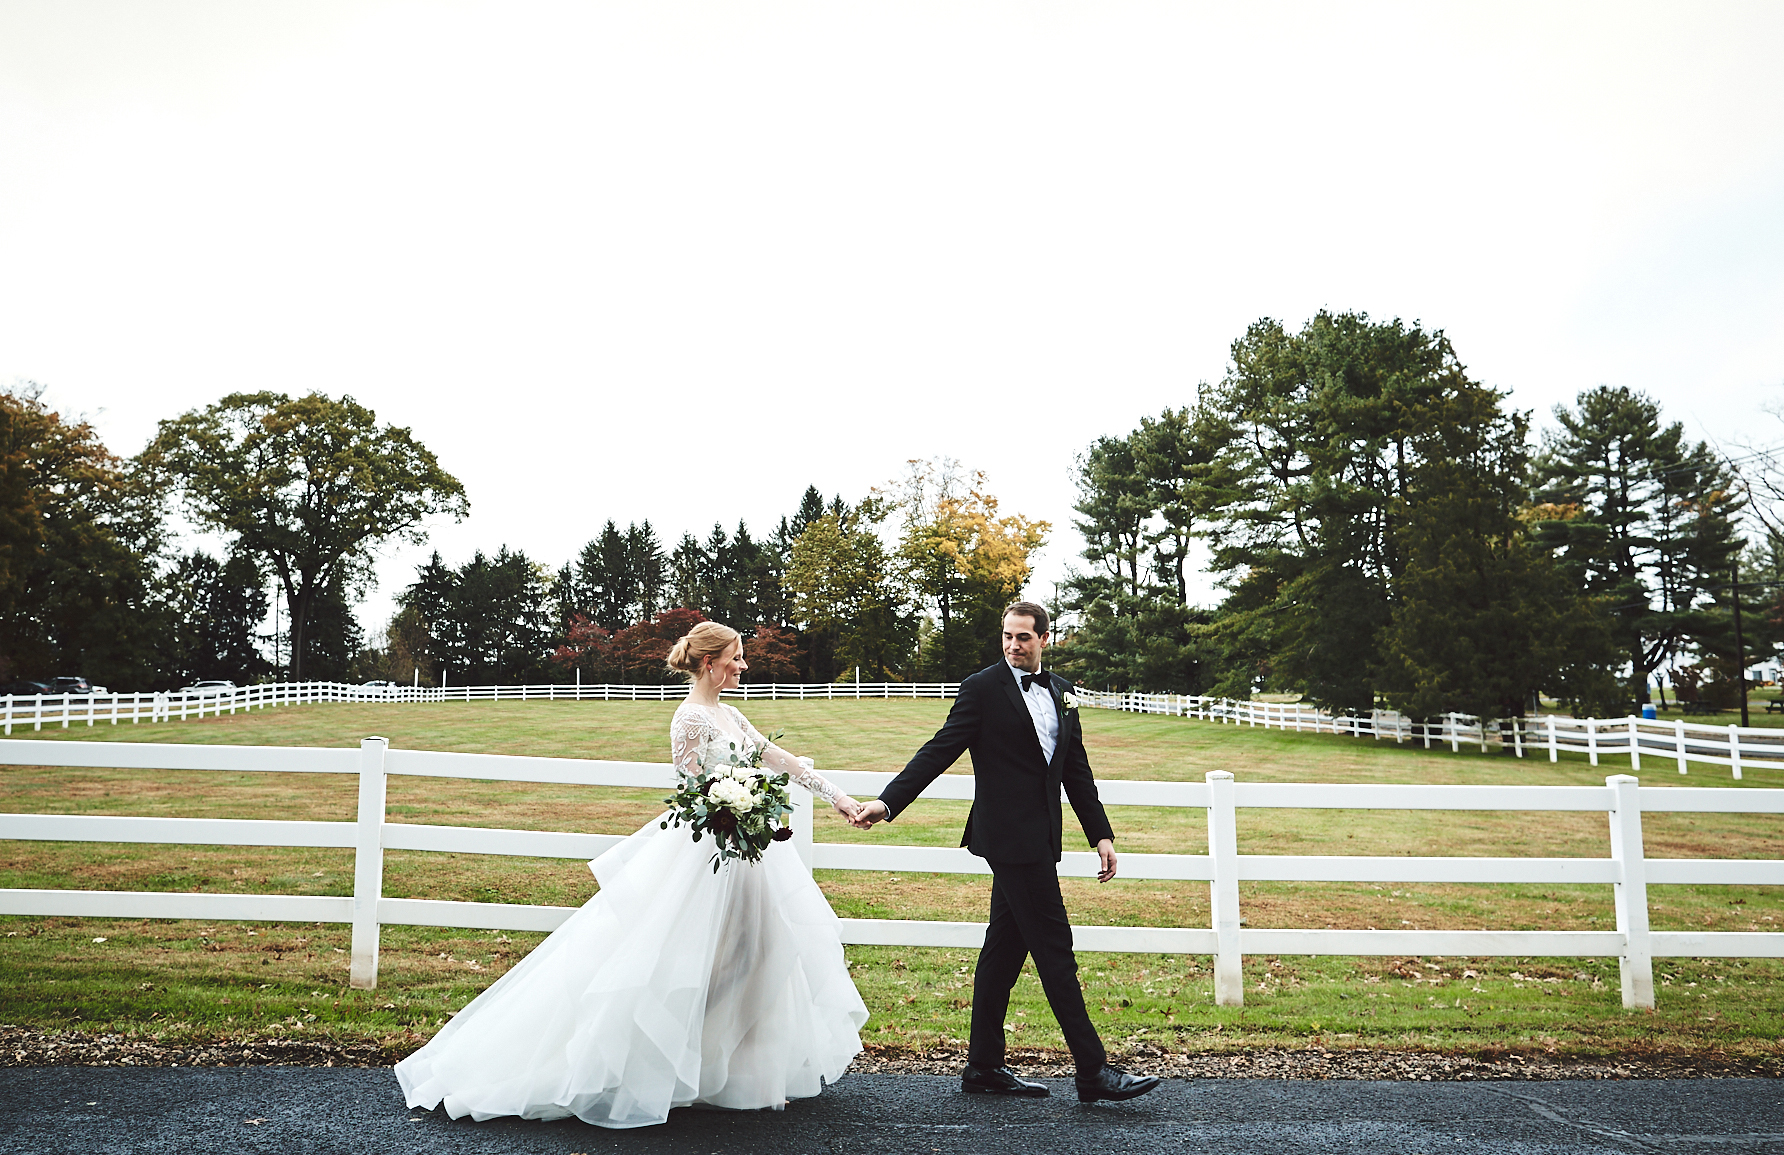 181027_TheRylandInnFallWeddingPhotography_NJWeddingPhotographer_By_BriJohnsonWeddings_0055.jpg